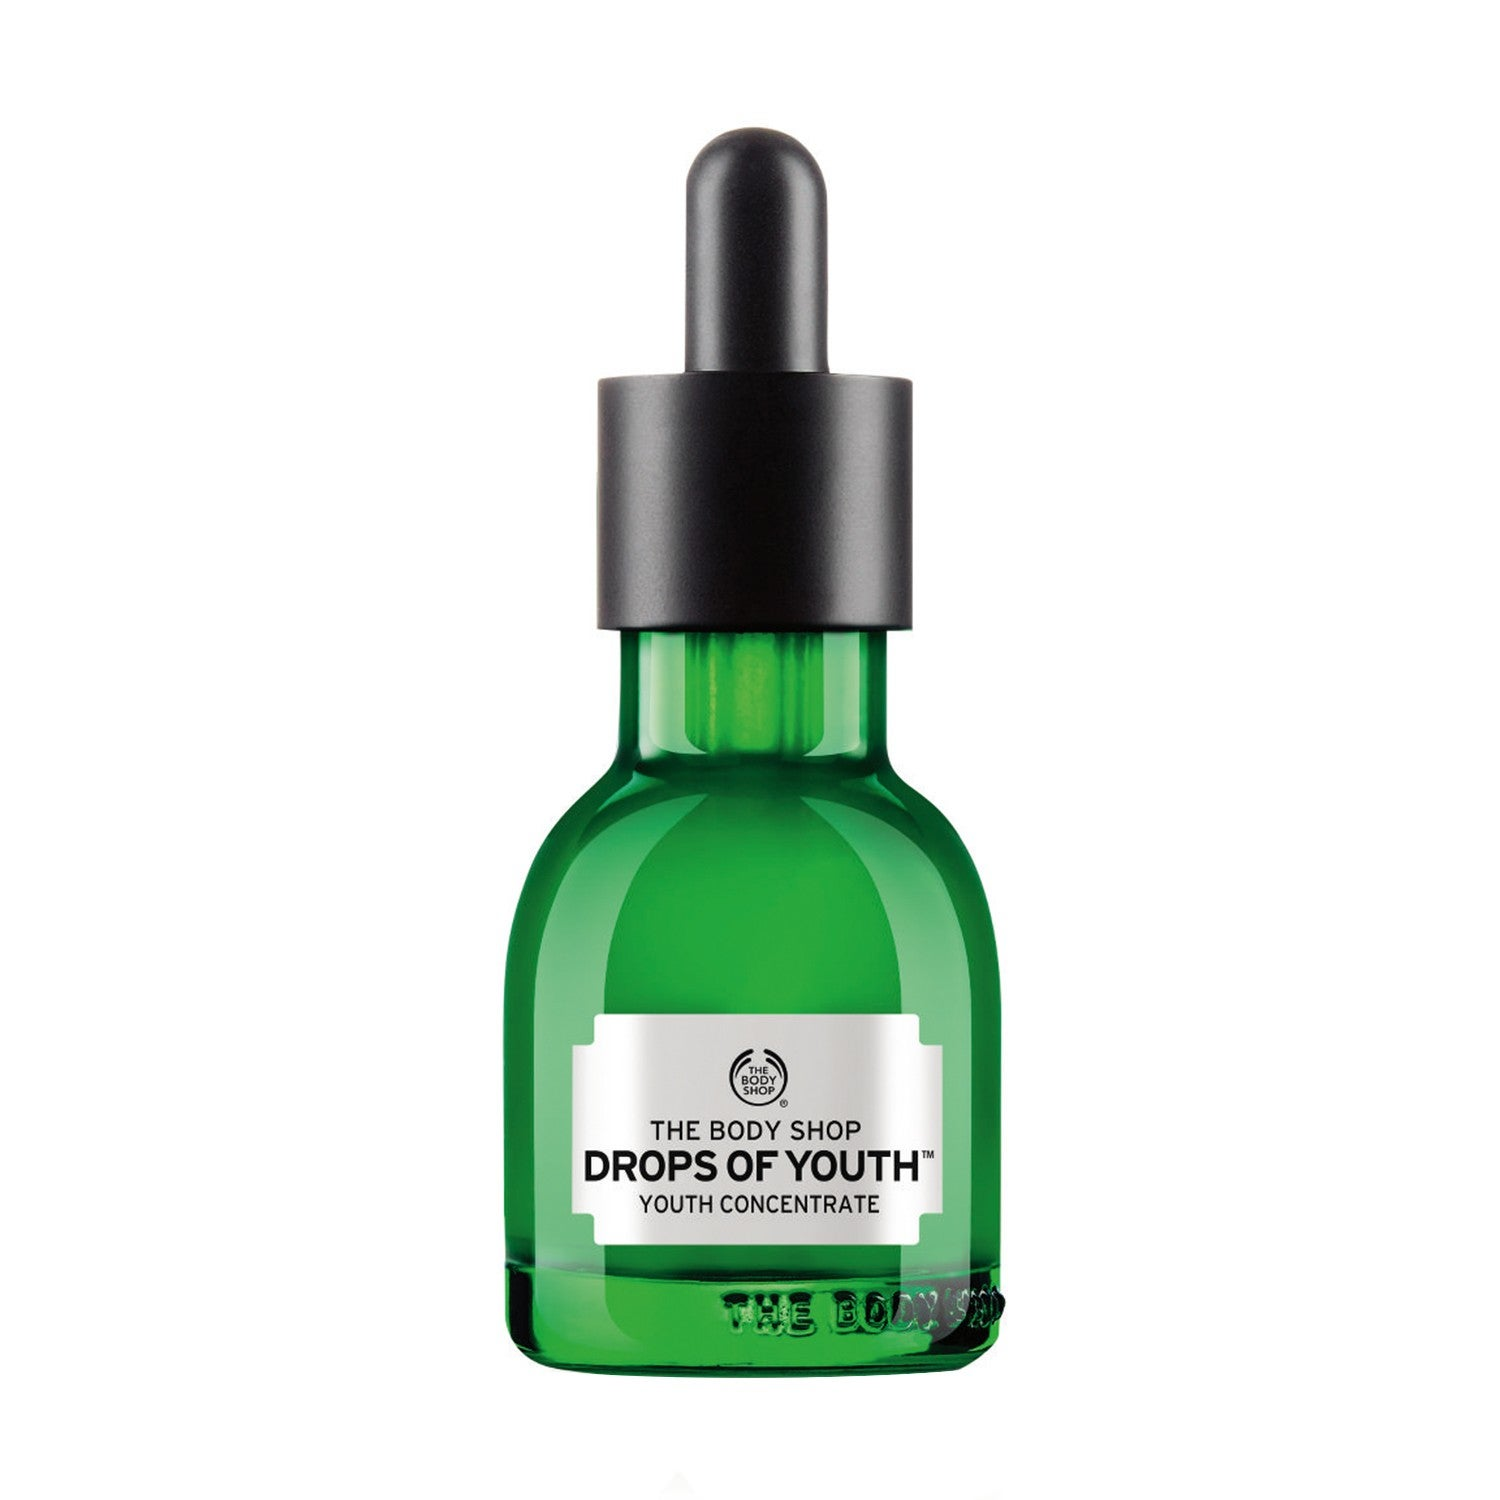 drops of youth review body shop